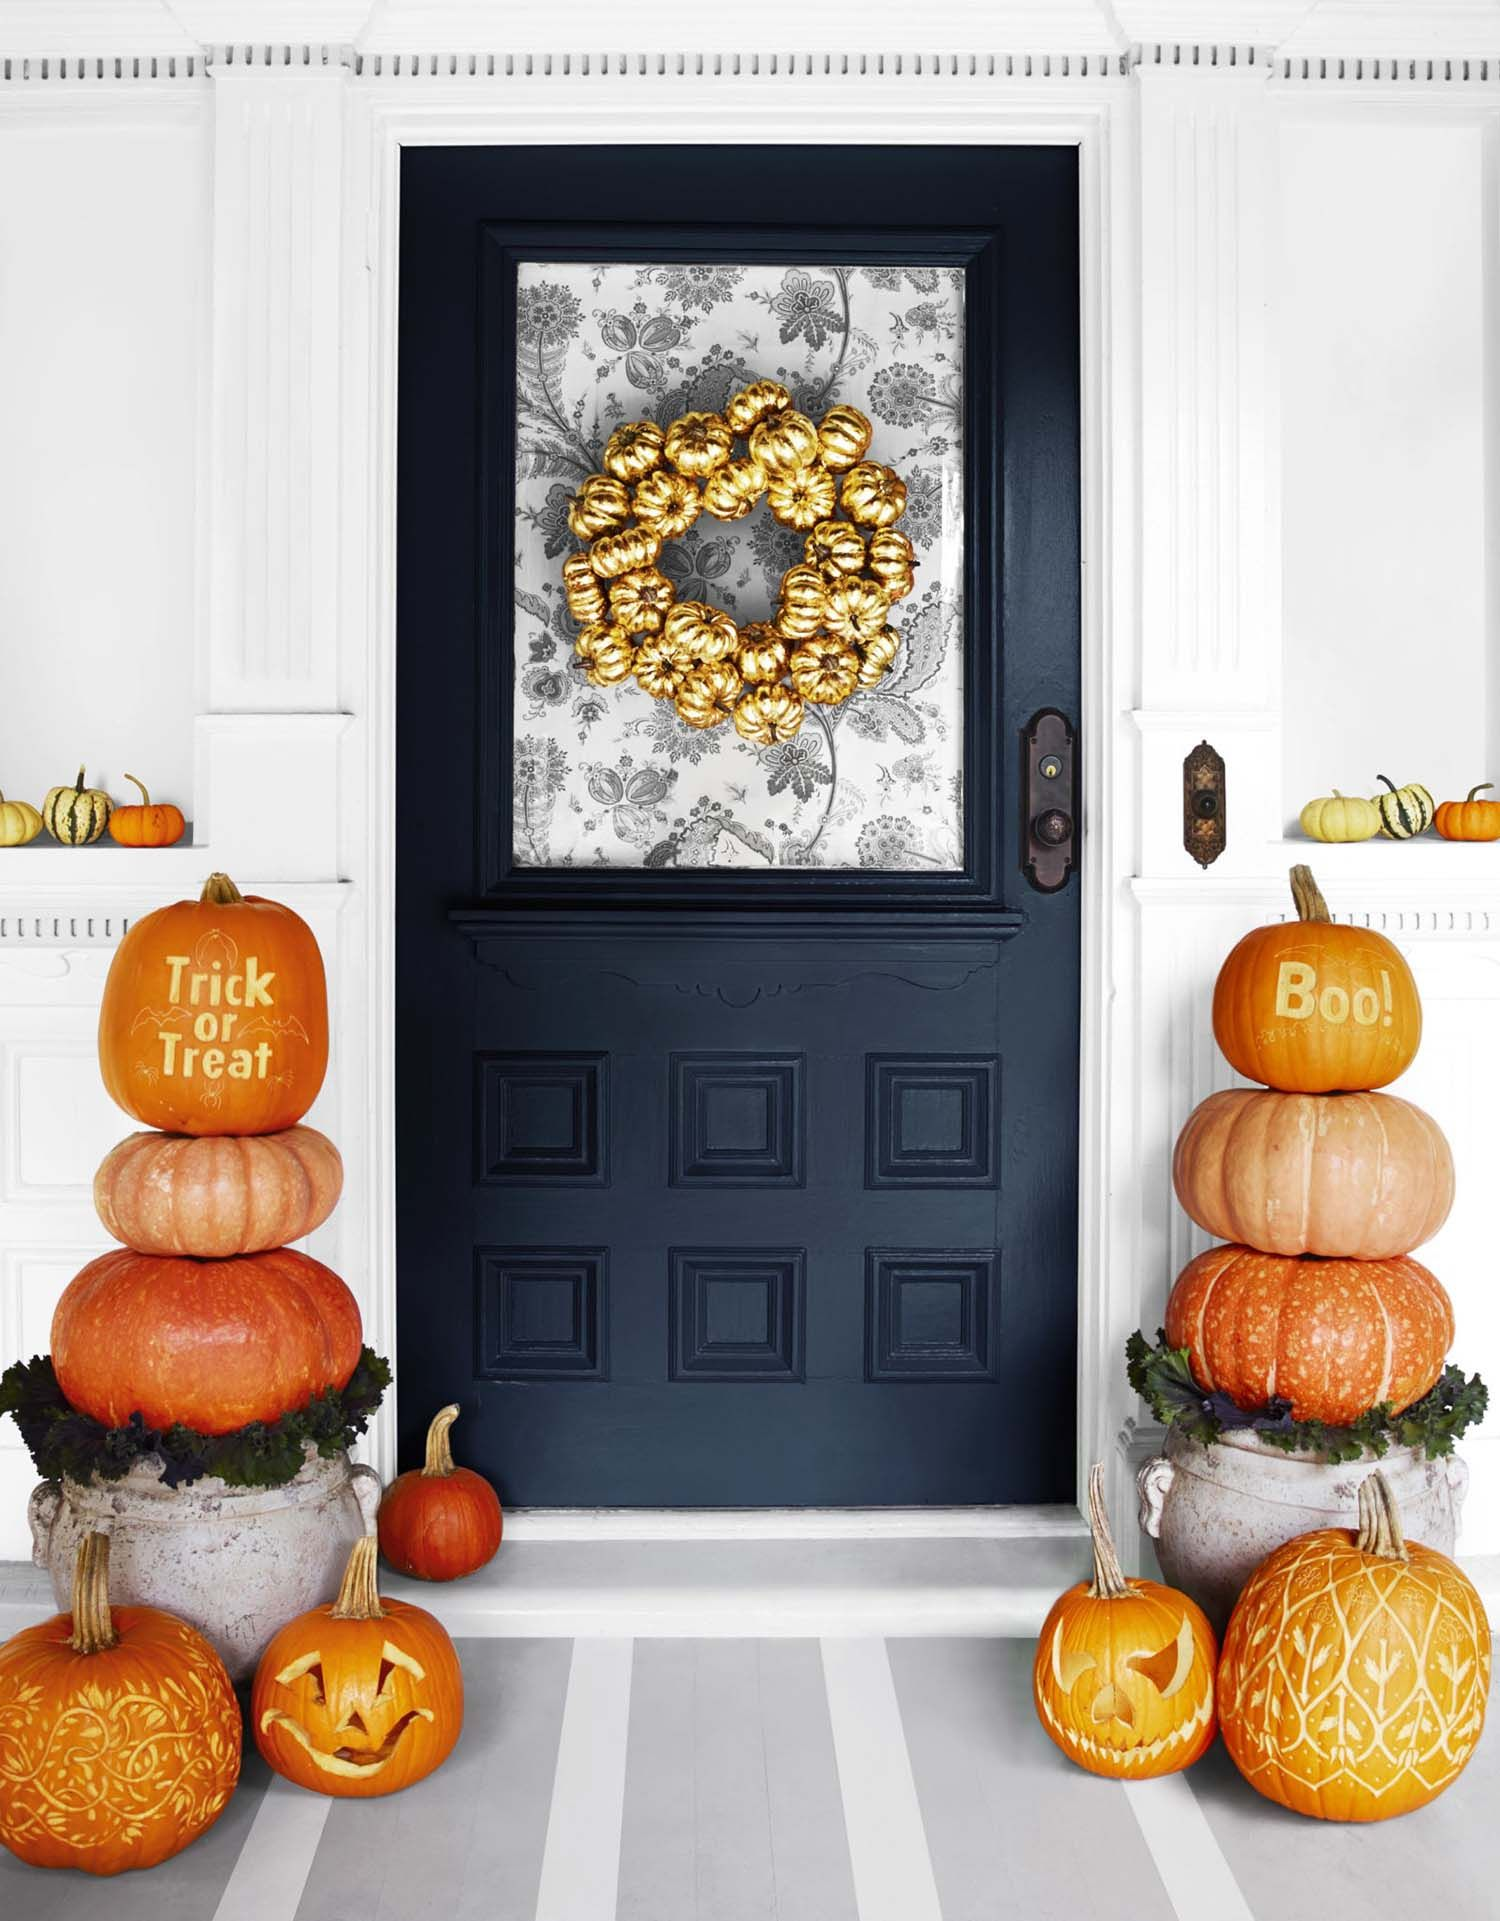 33 Amazingly creative Halloween front door decorating ideas - Halloween Door Decorations Ideas